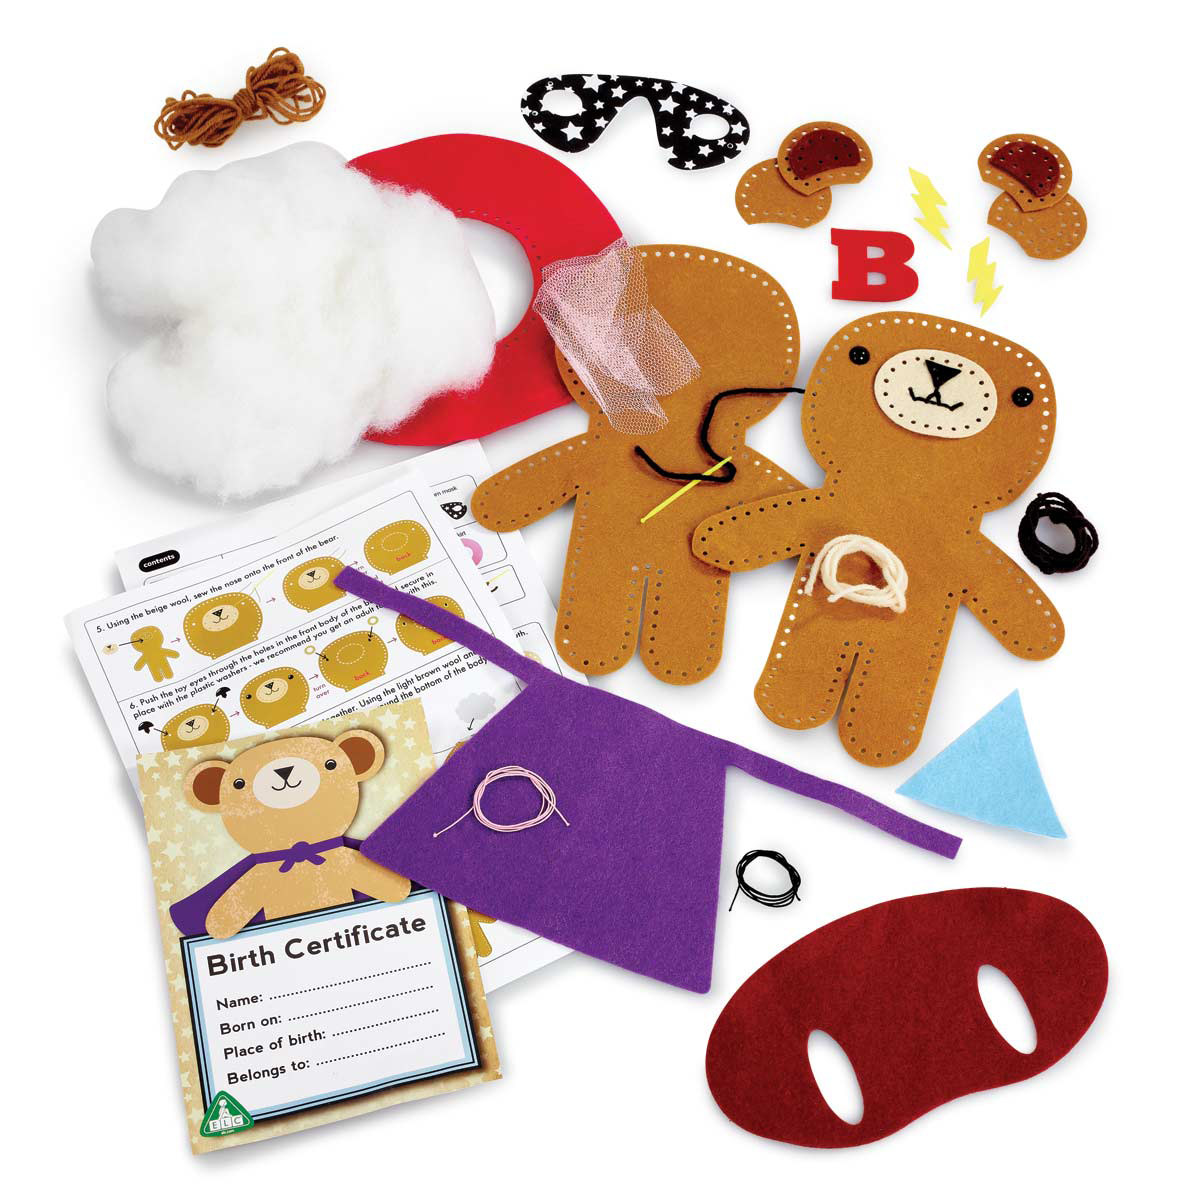 Sew Your Own Teddy from Early Learning Center